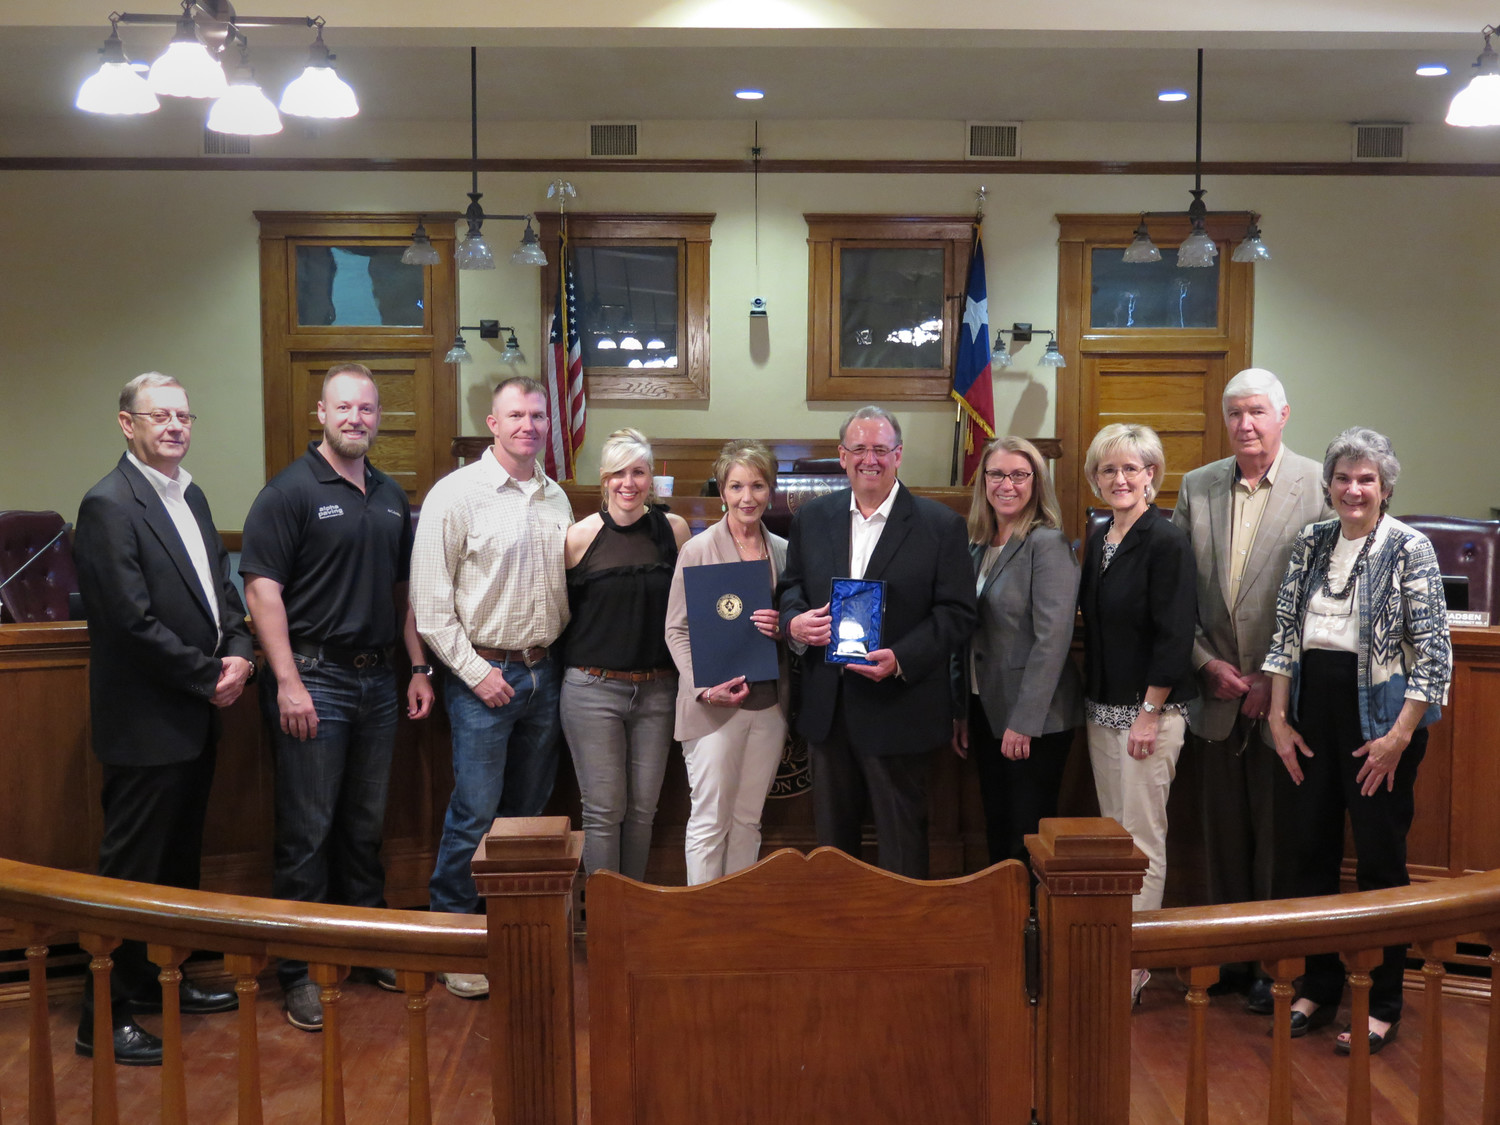 The Williamson County Commissioners Court honored longtime county employee John Sneed with a resolution in his name on April 24, just two days before his retirement.